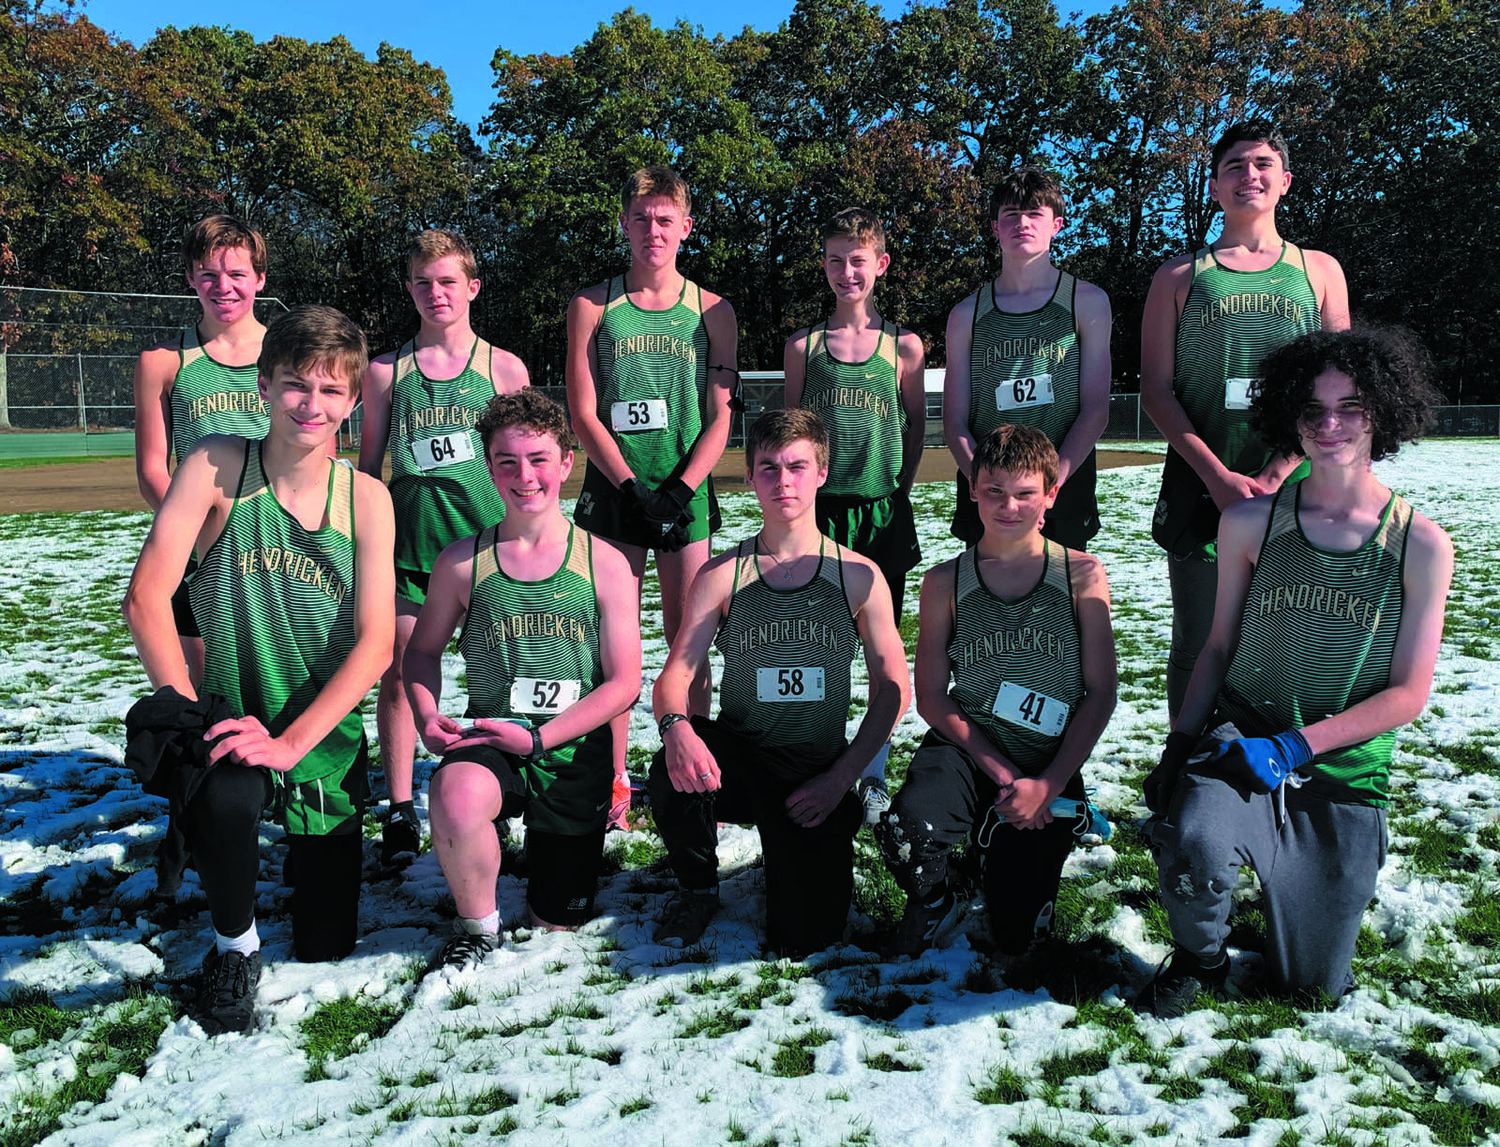 STATE CHAMPS: The Hendricken freshman cross country team after winning the state title. (Submitted photo)